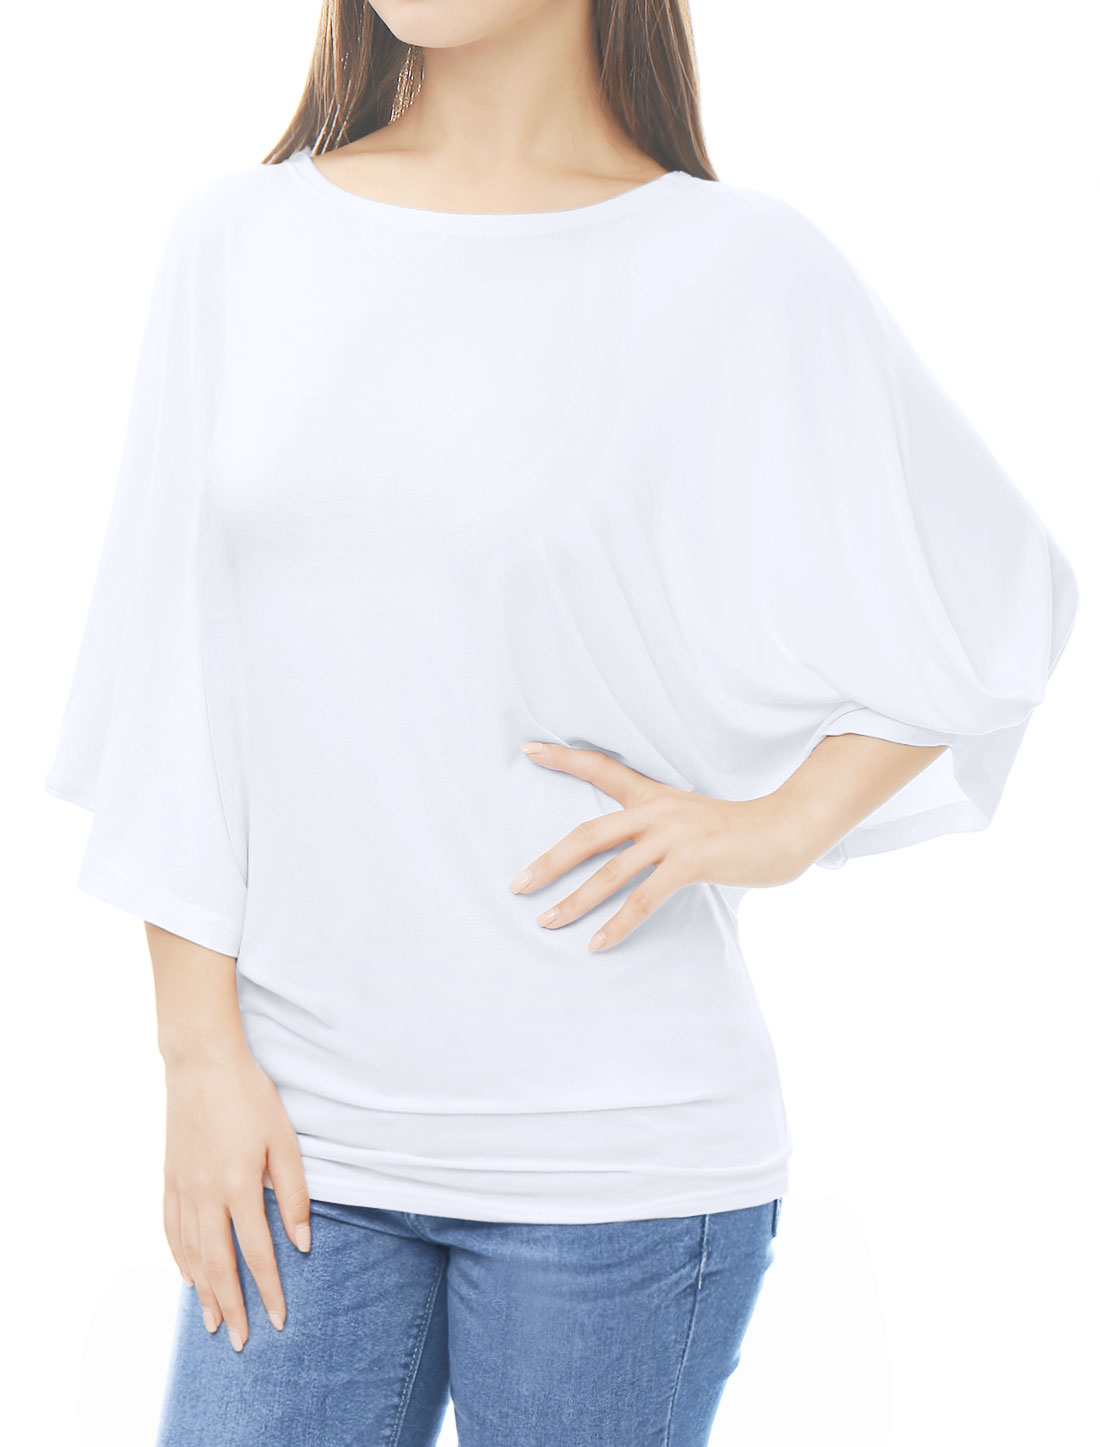 Women Boat Neck Batwing Sleeves Oversized Tunic Top White XS